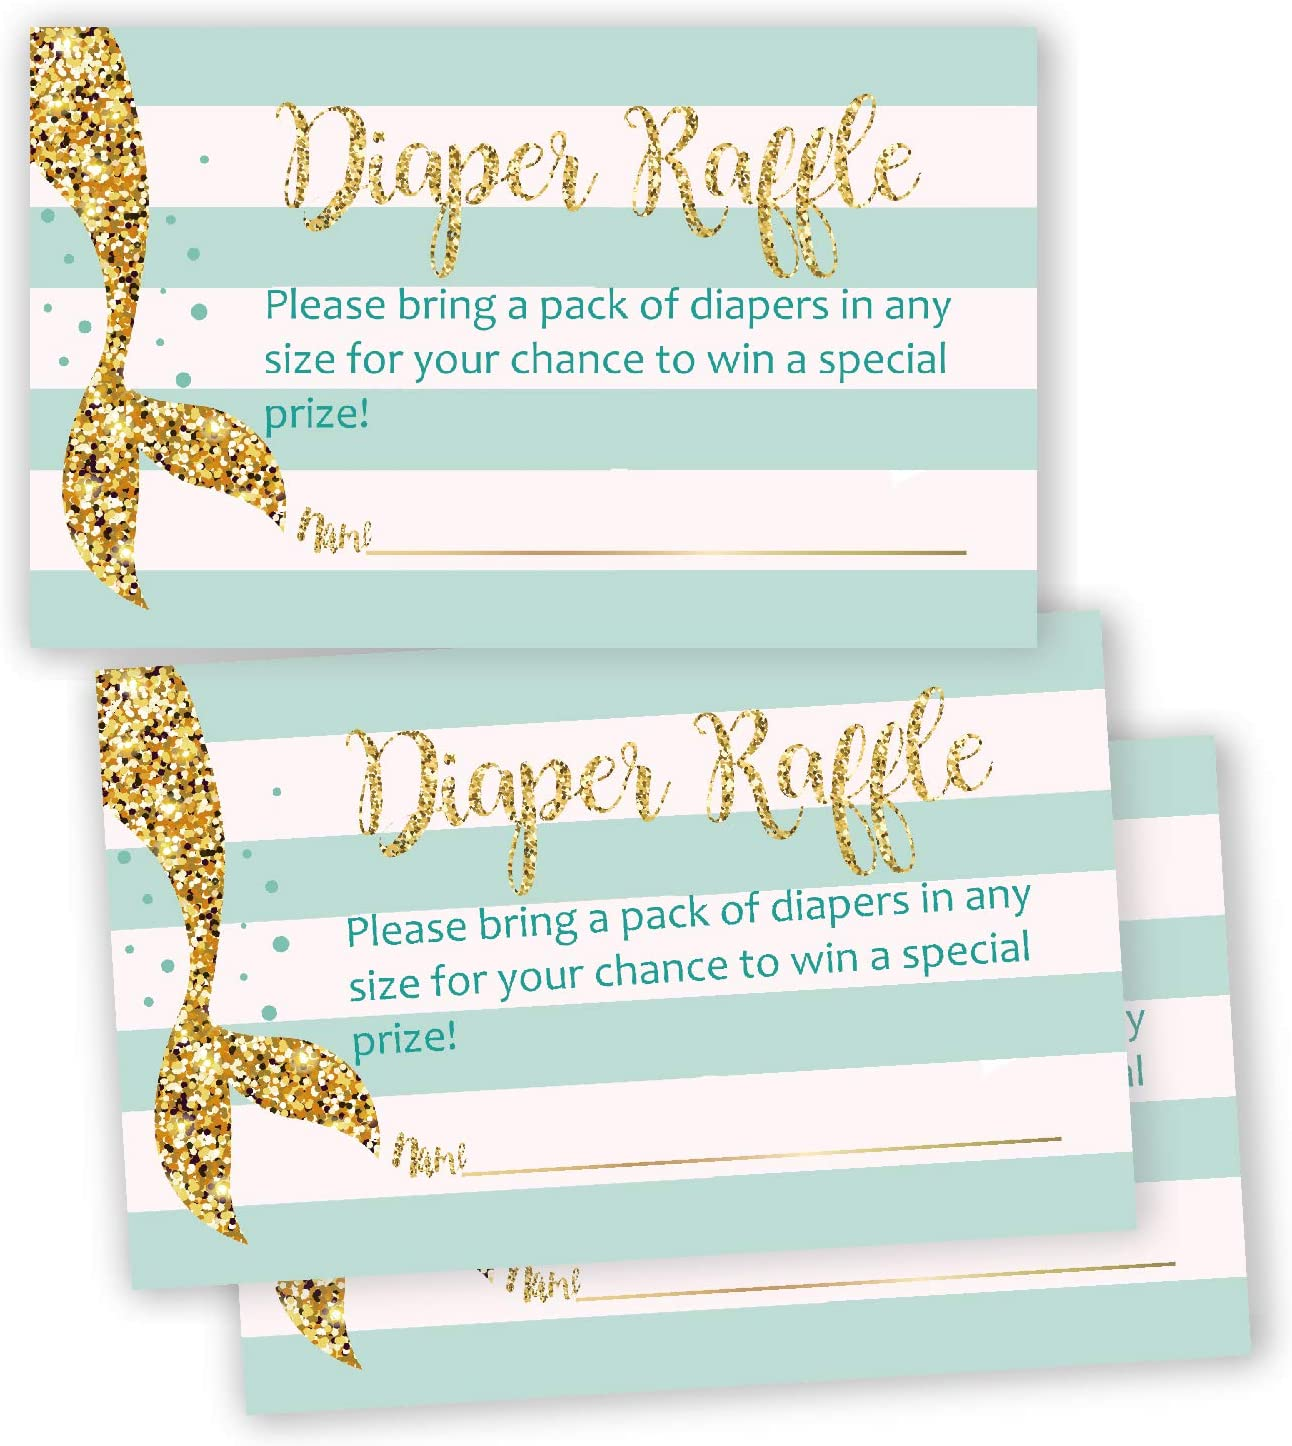 50 Mermaid Baby Shower Diaper Raffle Tickets, Lottery Insert Cards for Neutral Gender Reveal Party, Bring a Pack of Diapers to Win Favors.